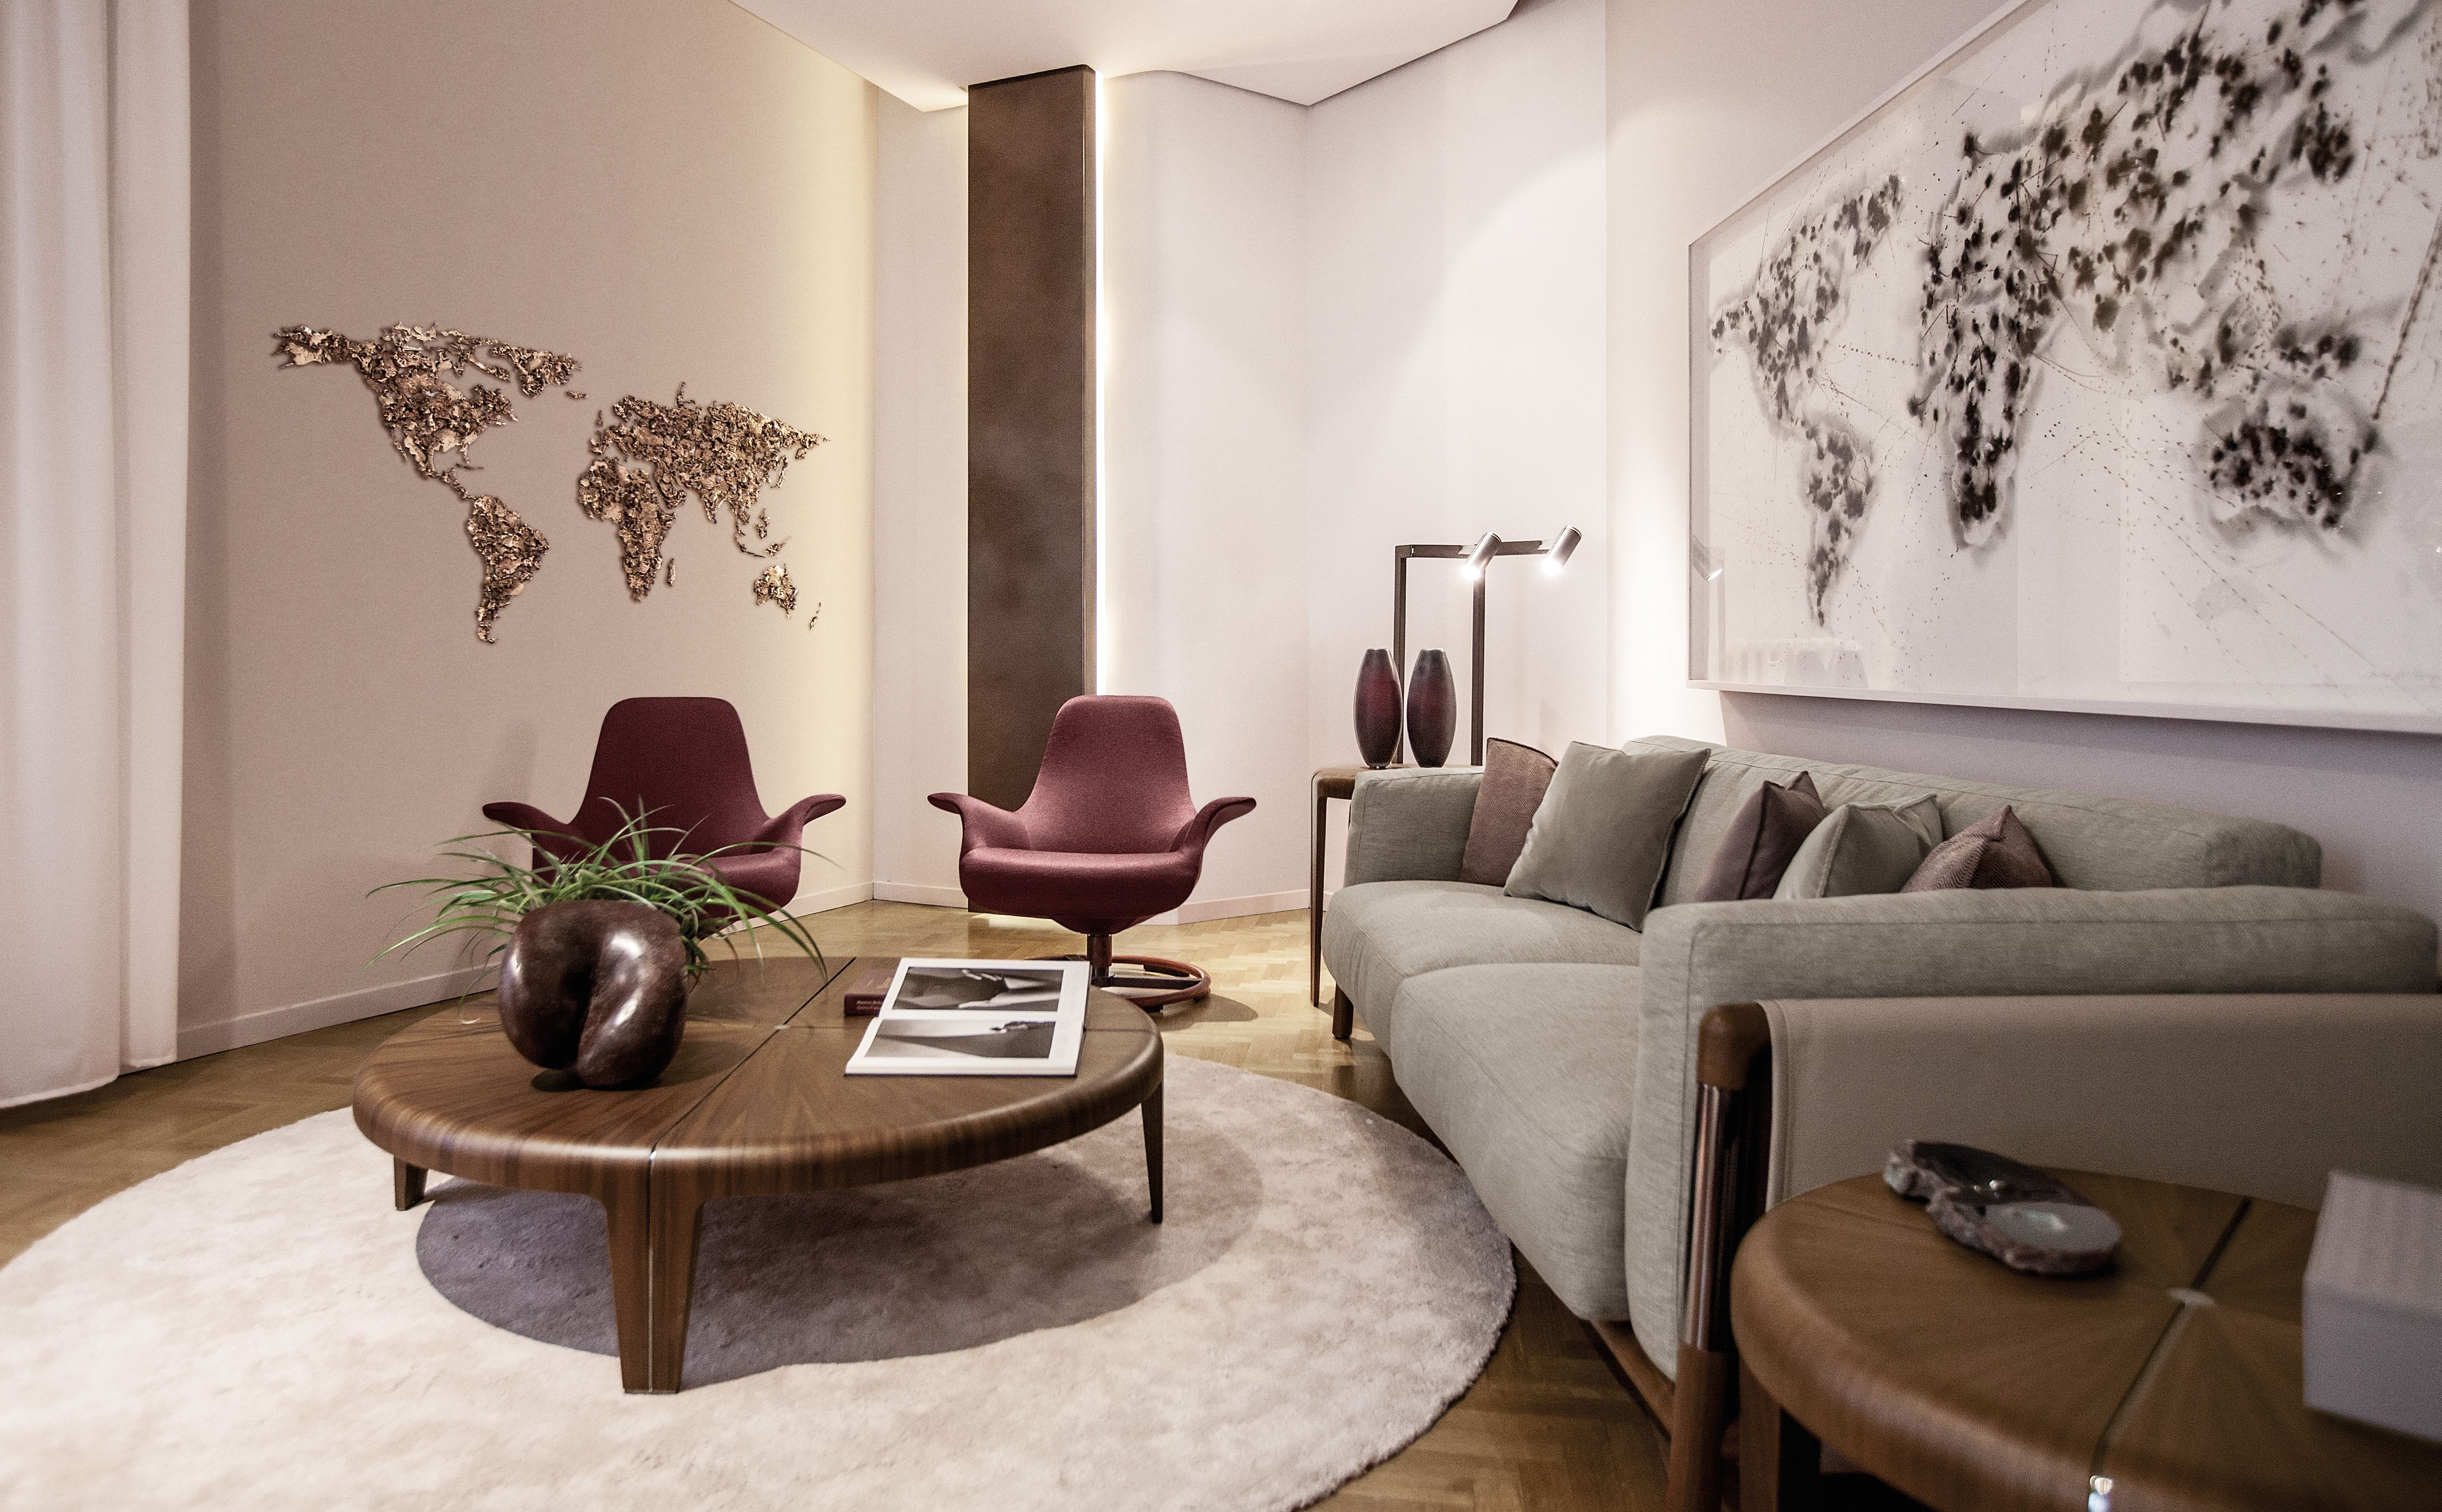 Find out Living space. interior